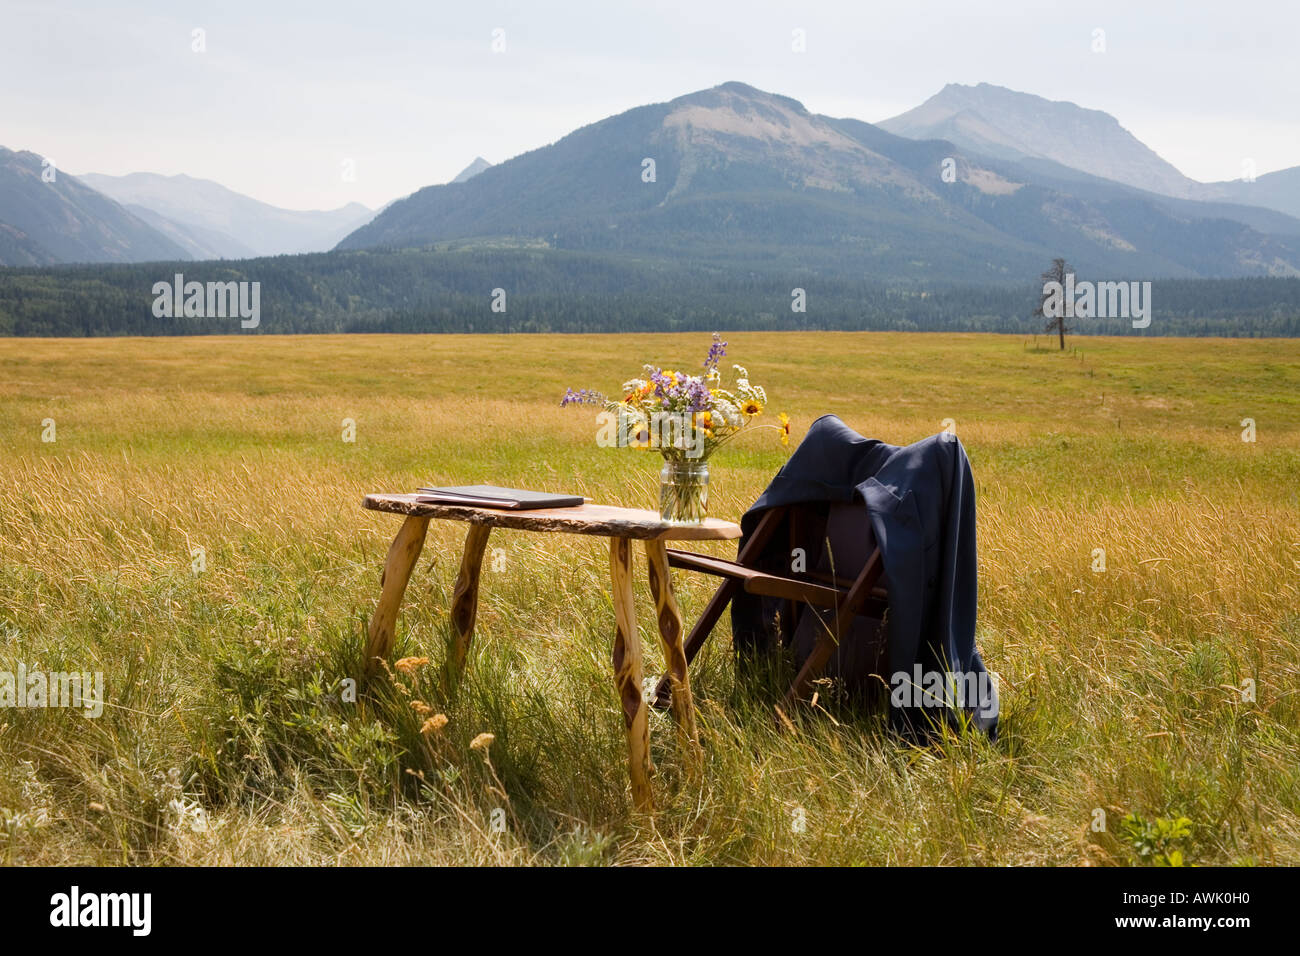 Table in a field of golden grass to register a wedding in Rocky mountains Alberta Canada - Stock Image